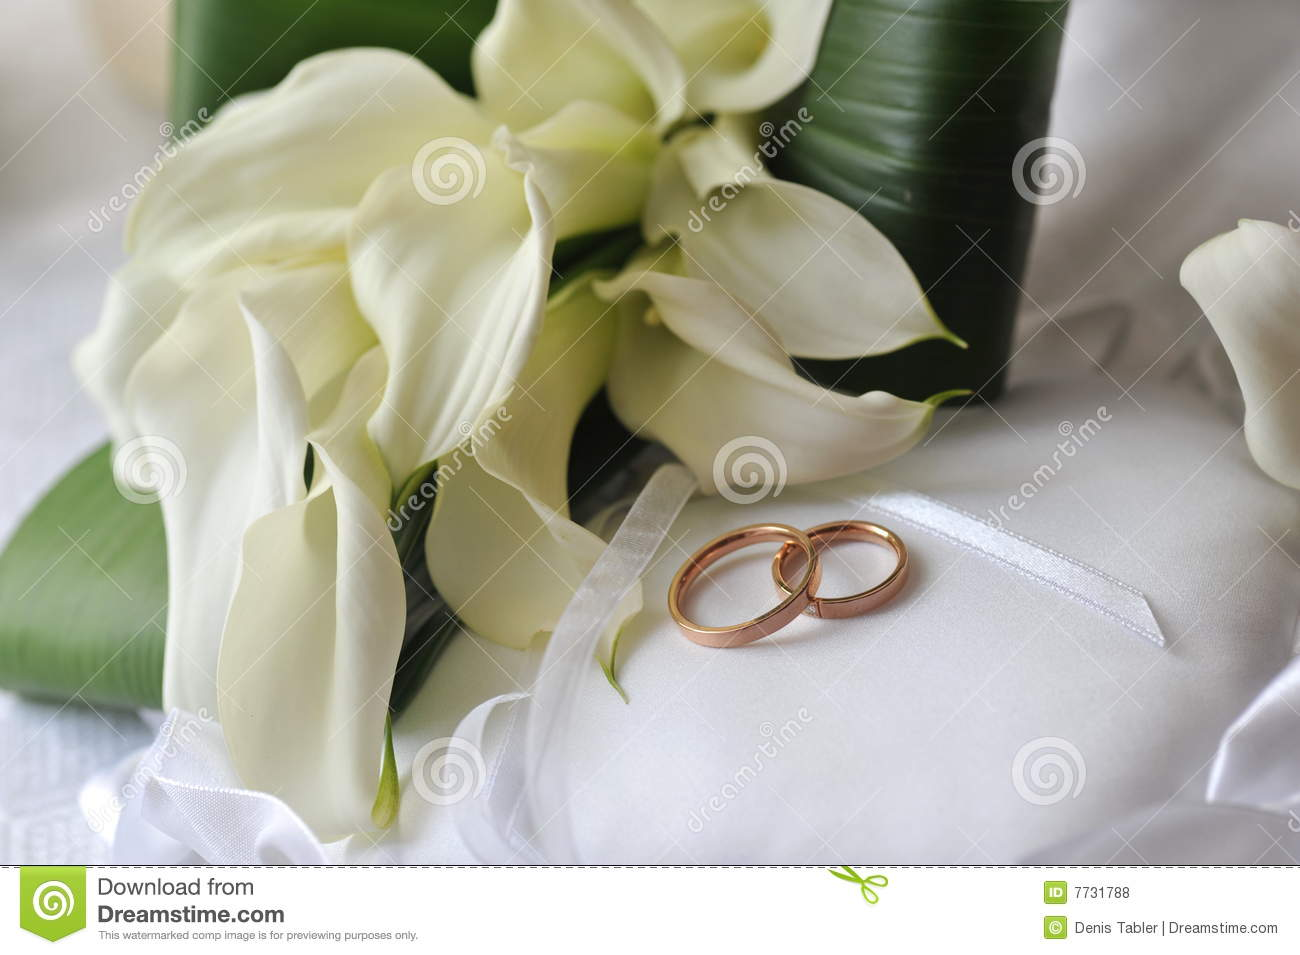 hands wallpaper roses wedding bouquet rings download